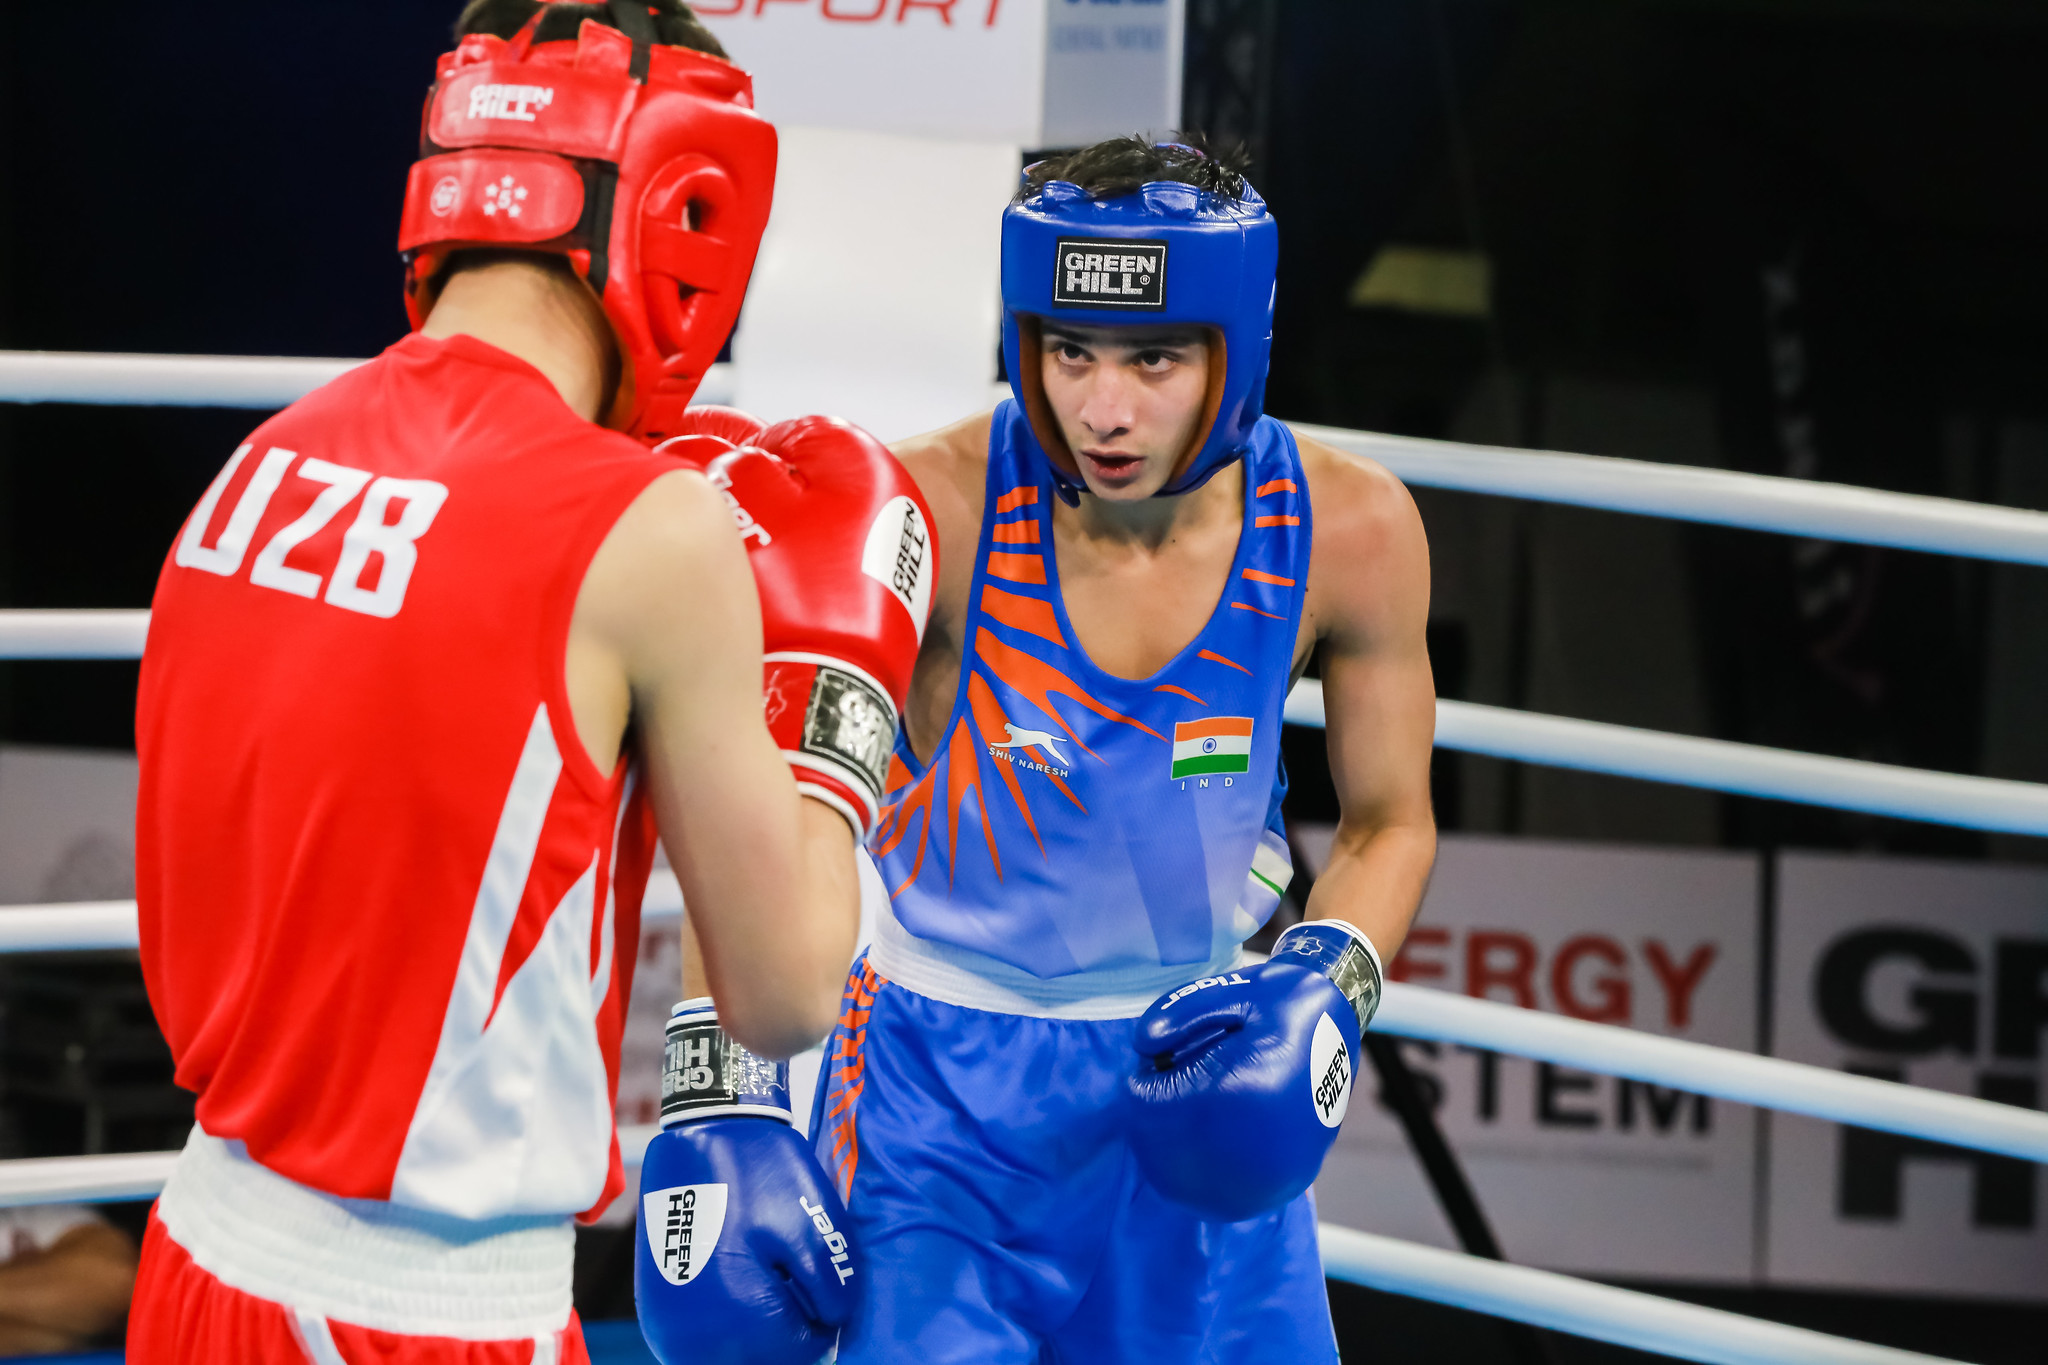 Sachin, in blue, joined the Indian medal rush in the men's 56kg bantamweight category ©AIBA